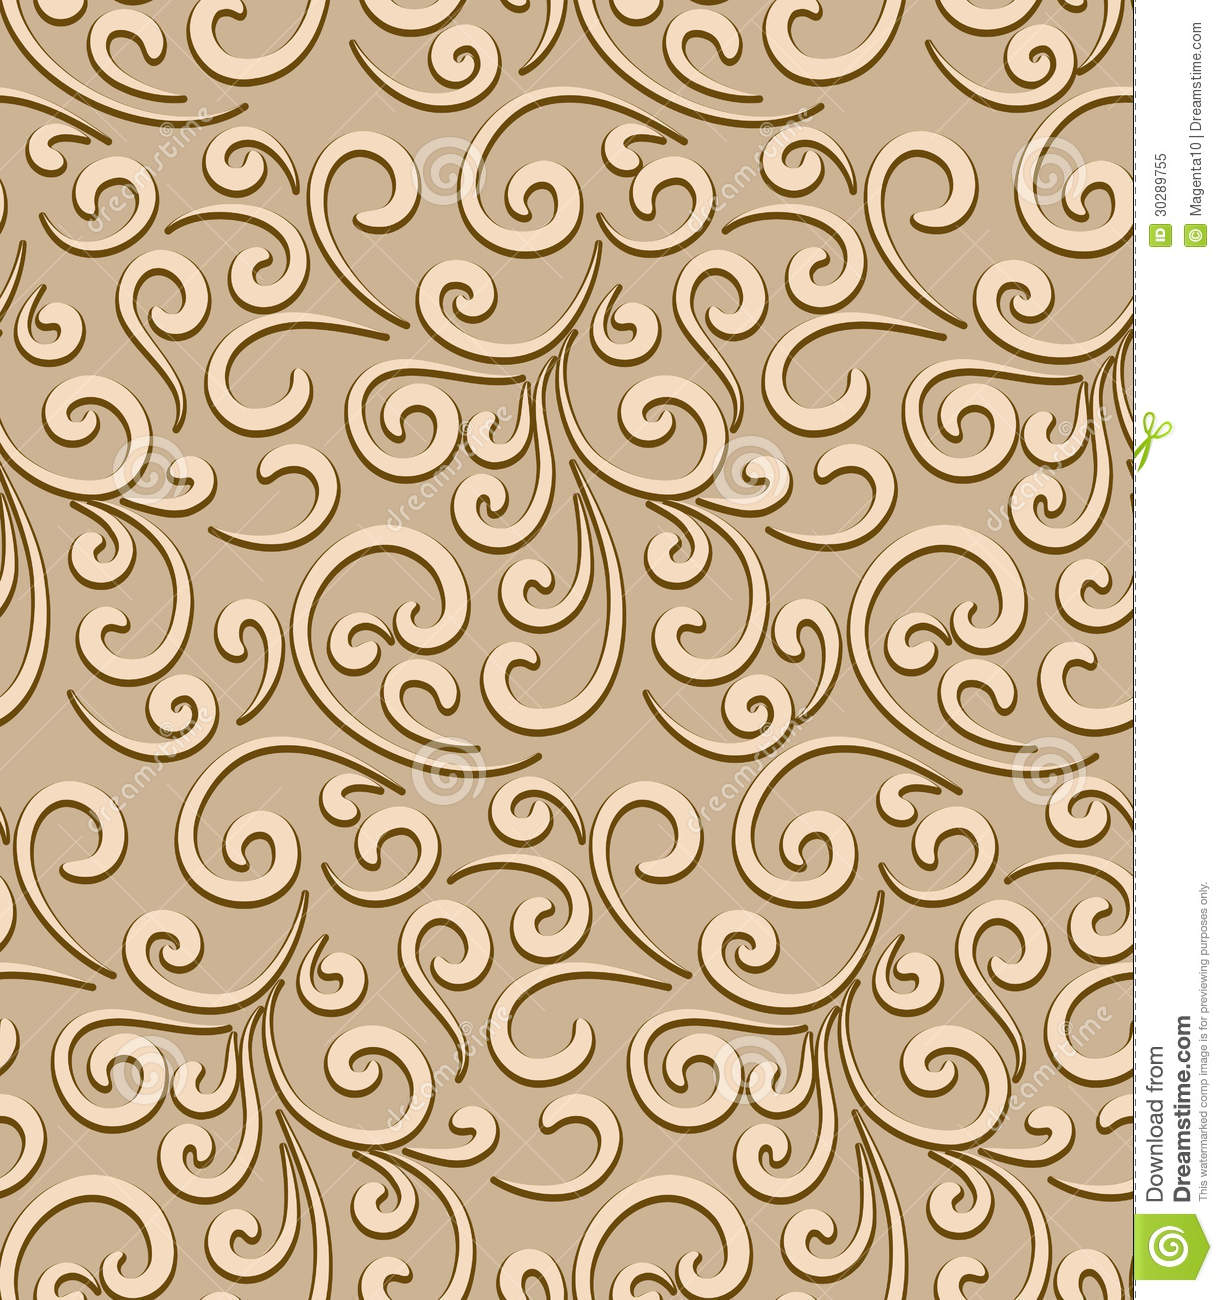 Abstract seamless pattern, decorative floral swirls, vintage gold ...